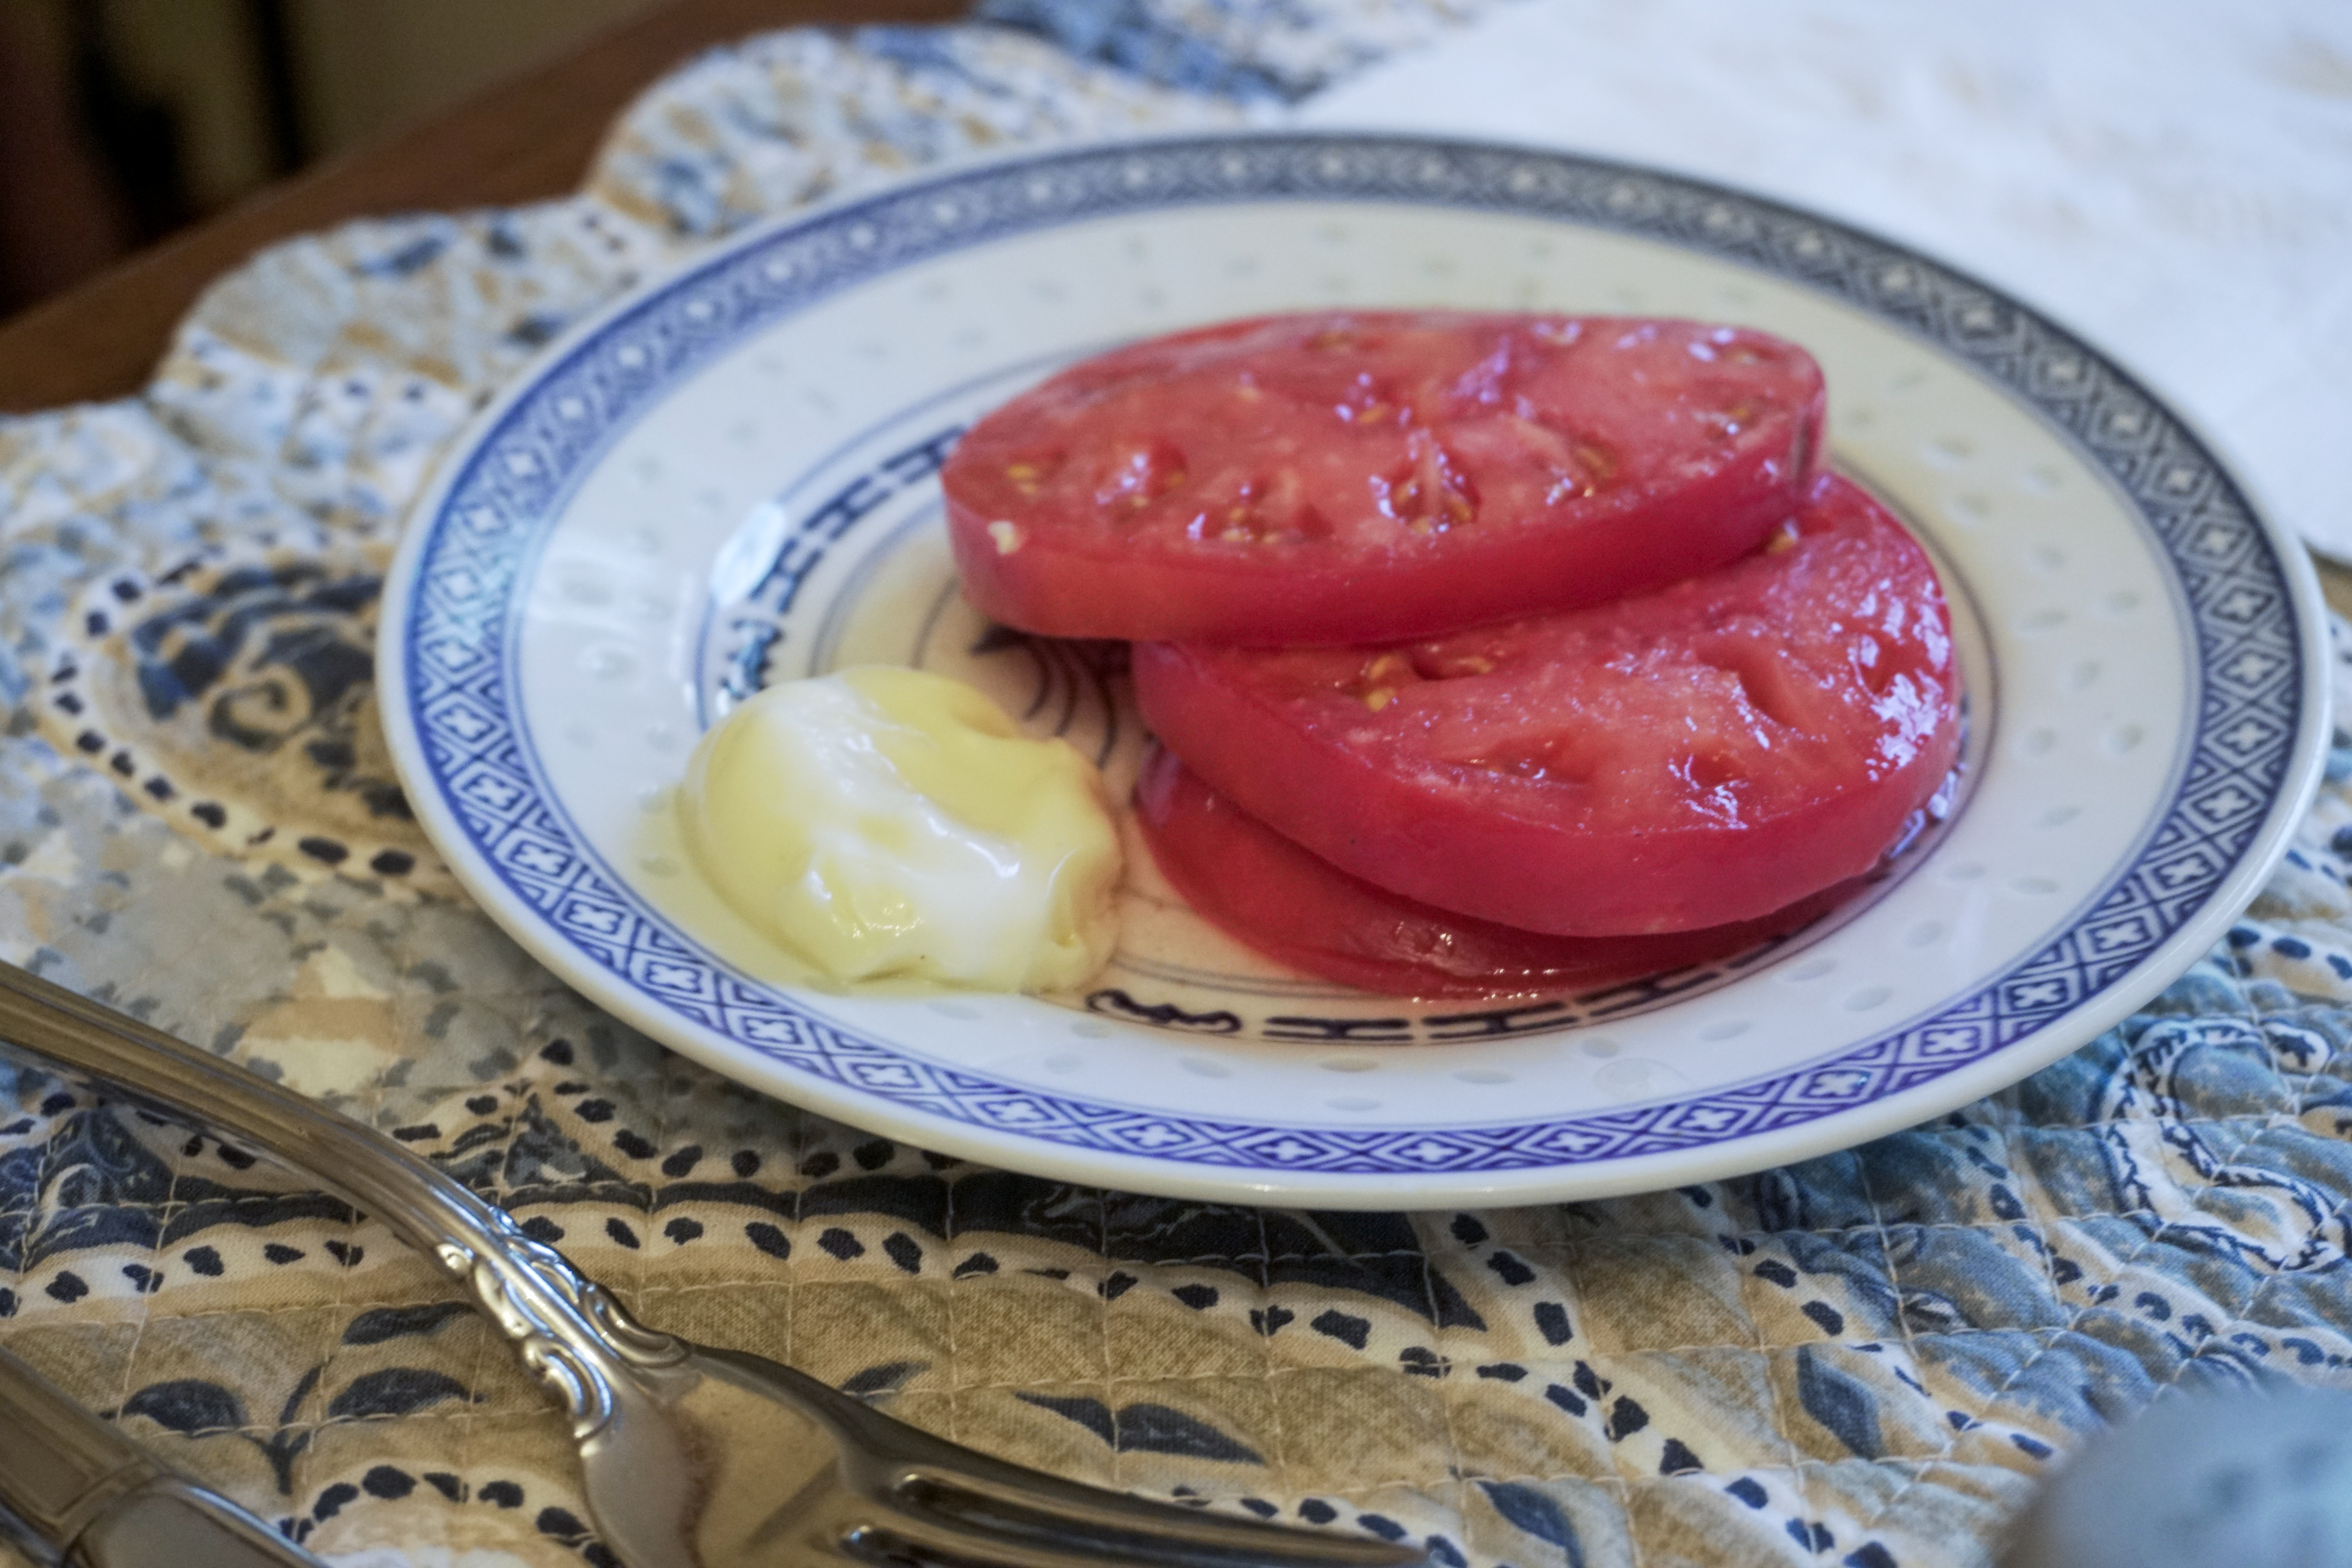 Caption: Mary Lou Estler slices up her family's heirloom mortgage lifter tomato. But there's a mystery with this tomato. Listen to the show to learn more., Credit: Zack Harold/ WVPB